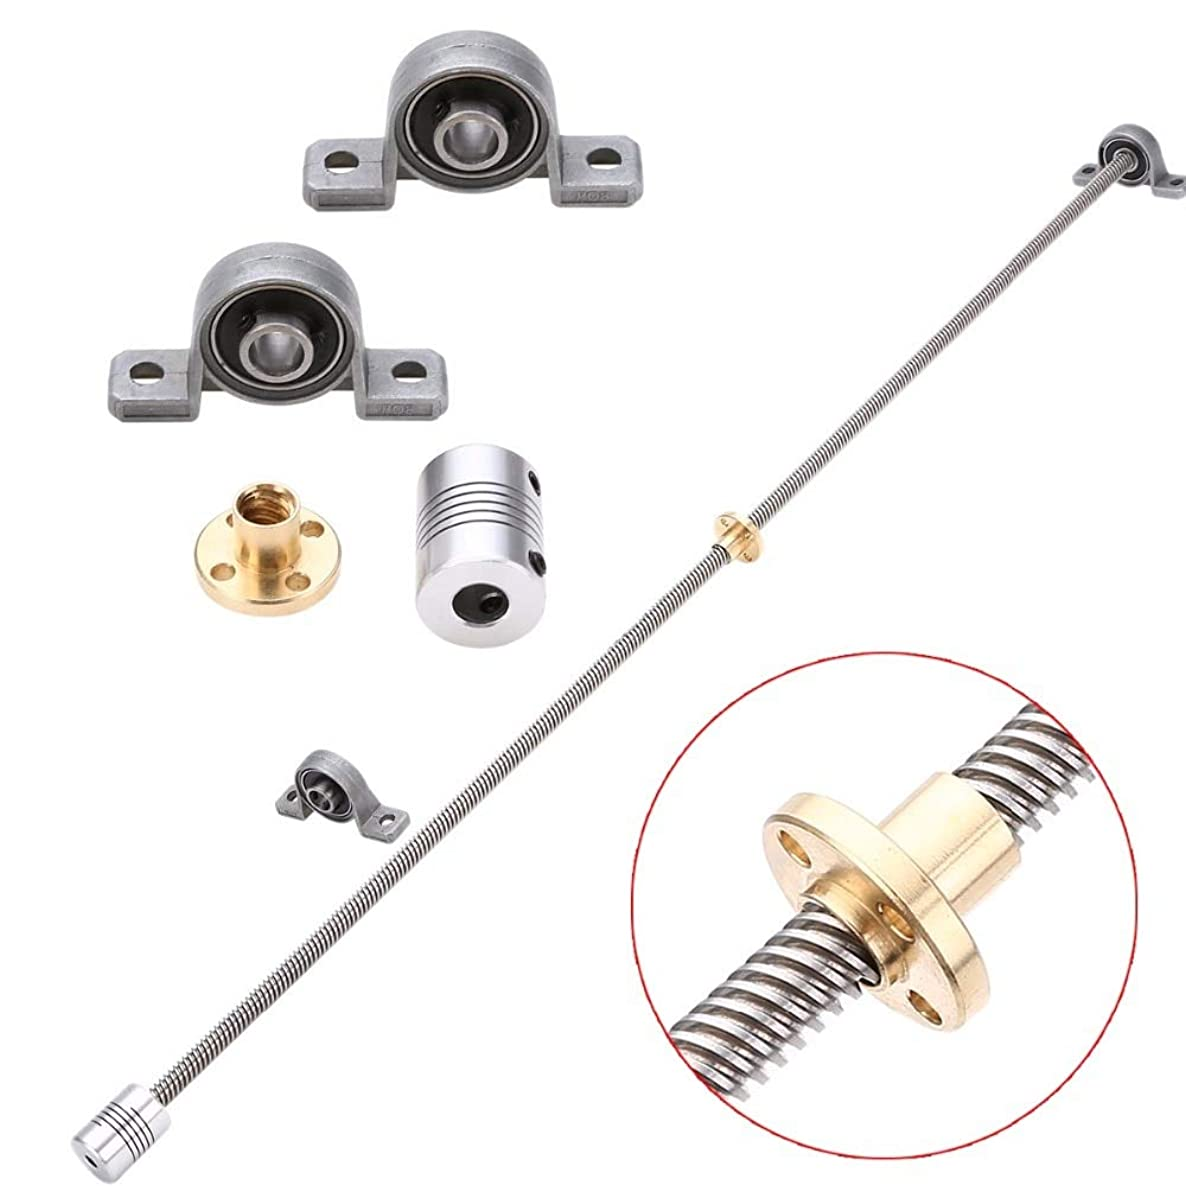 JIAIIO 1pc 600mm T8 Lead Screw Rod + 1pc Shaft Coupling + 2pcs Mounted Ball Bearing with Screw Nut For 3D Printer